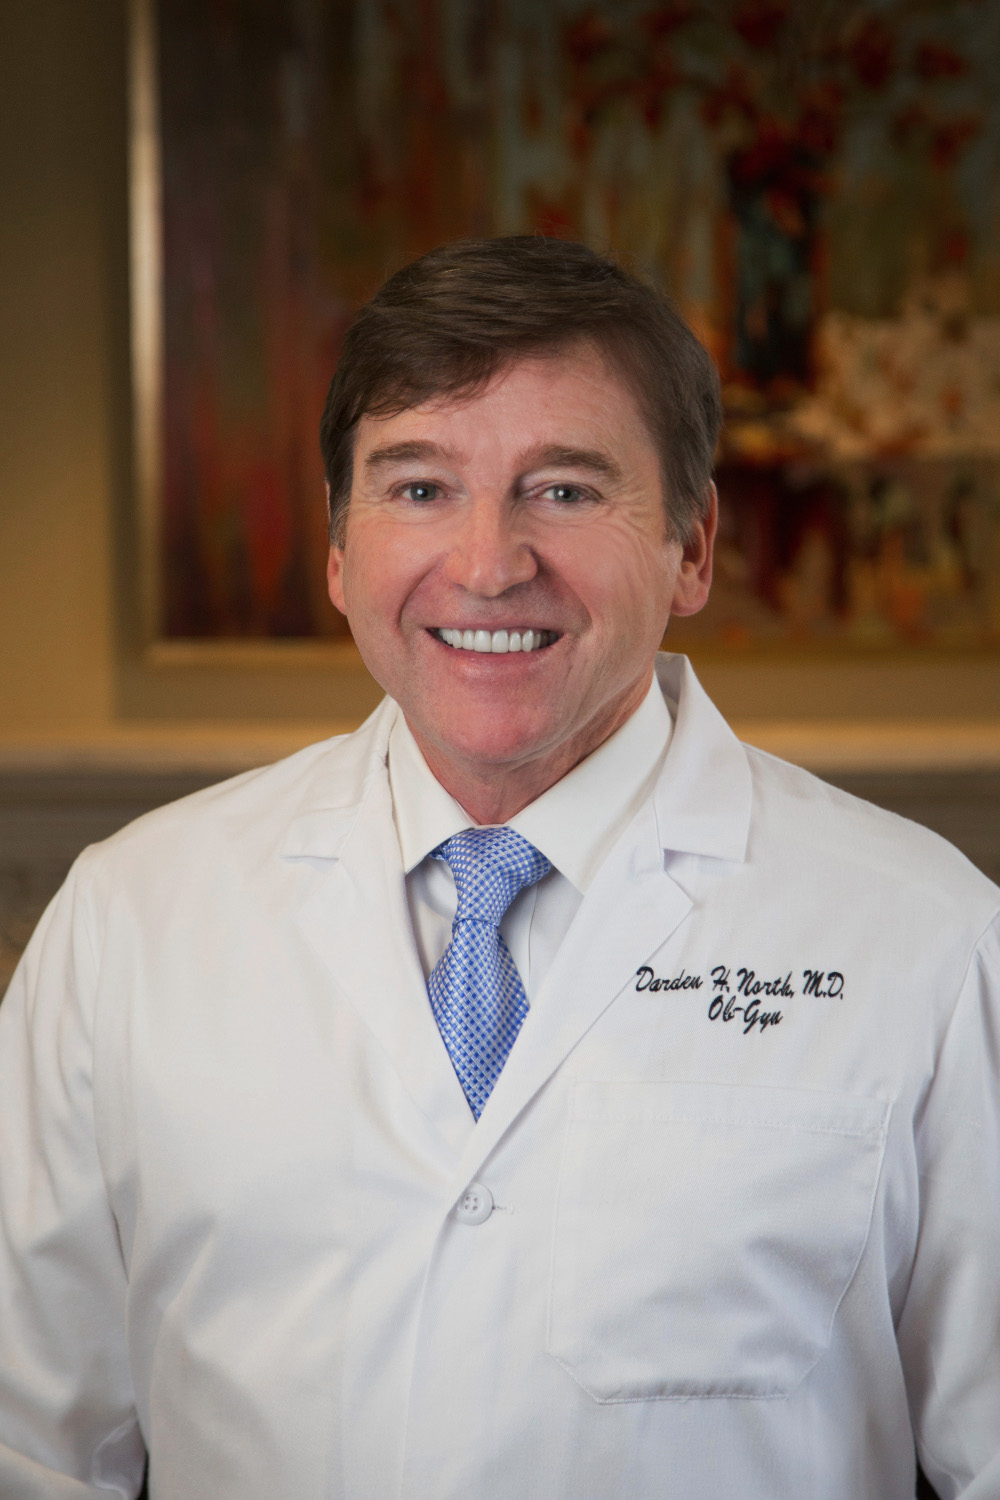 DARDEN H. NORTH, M.D.